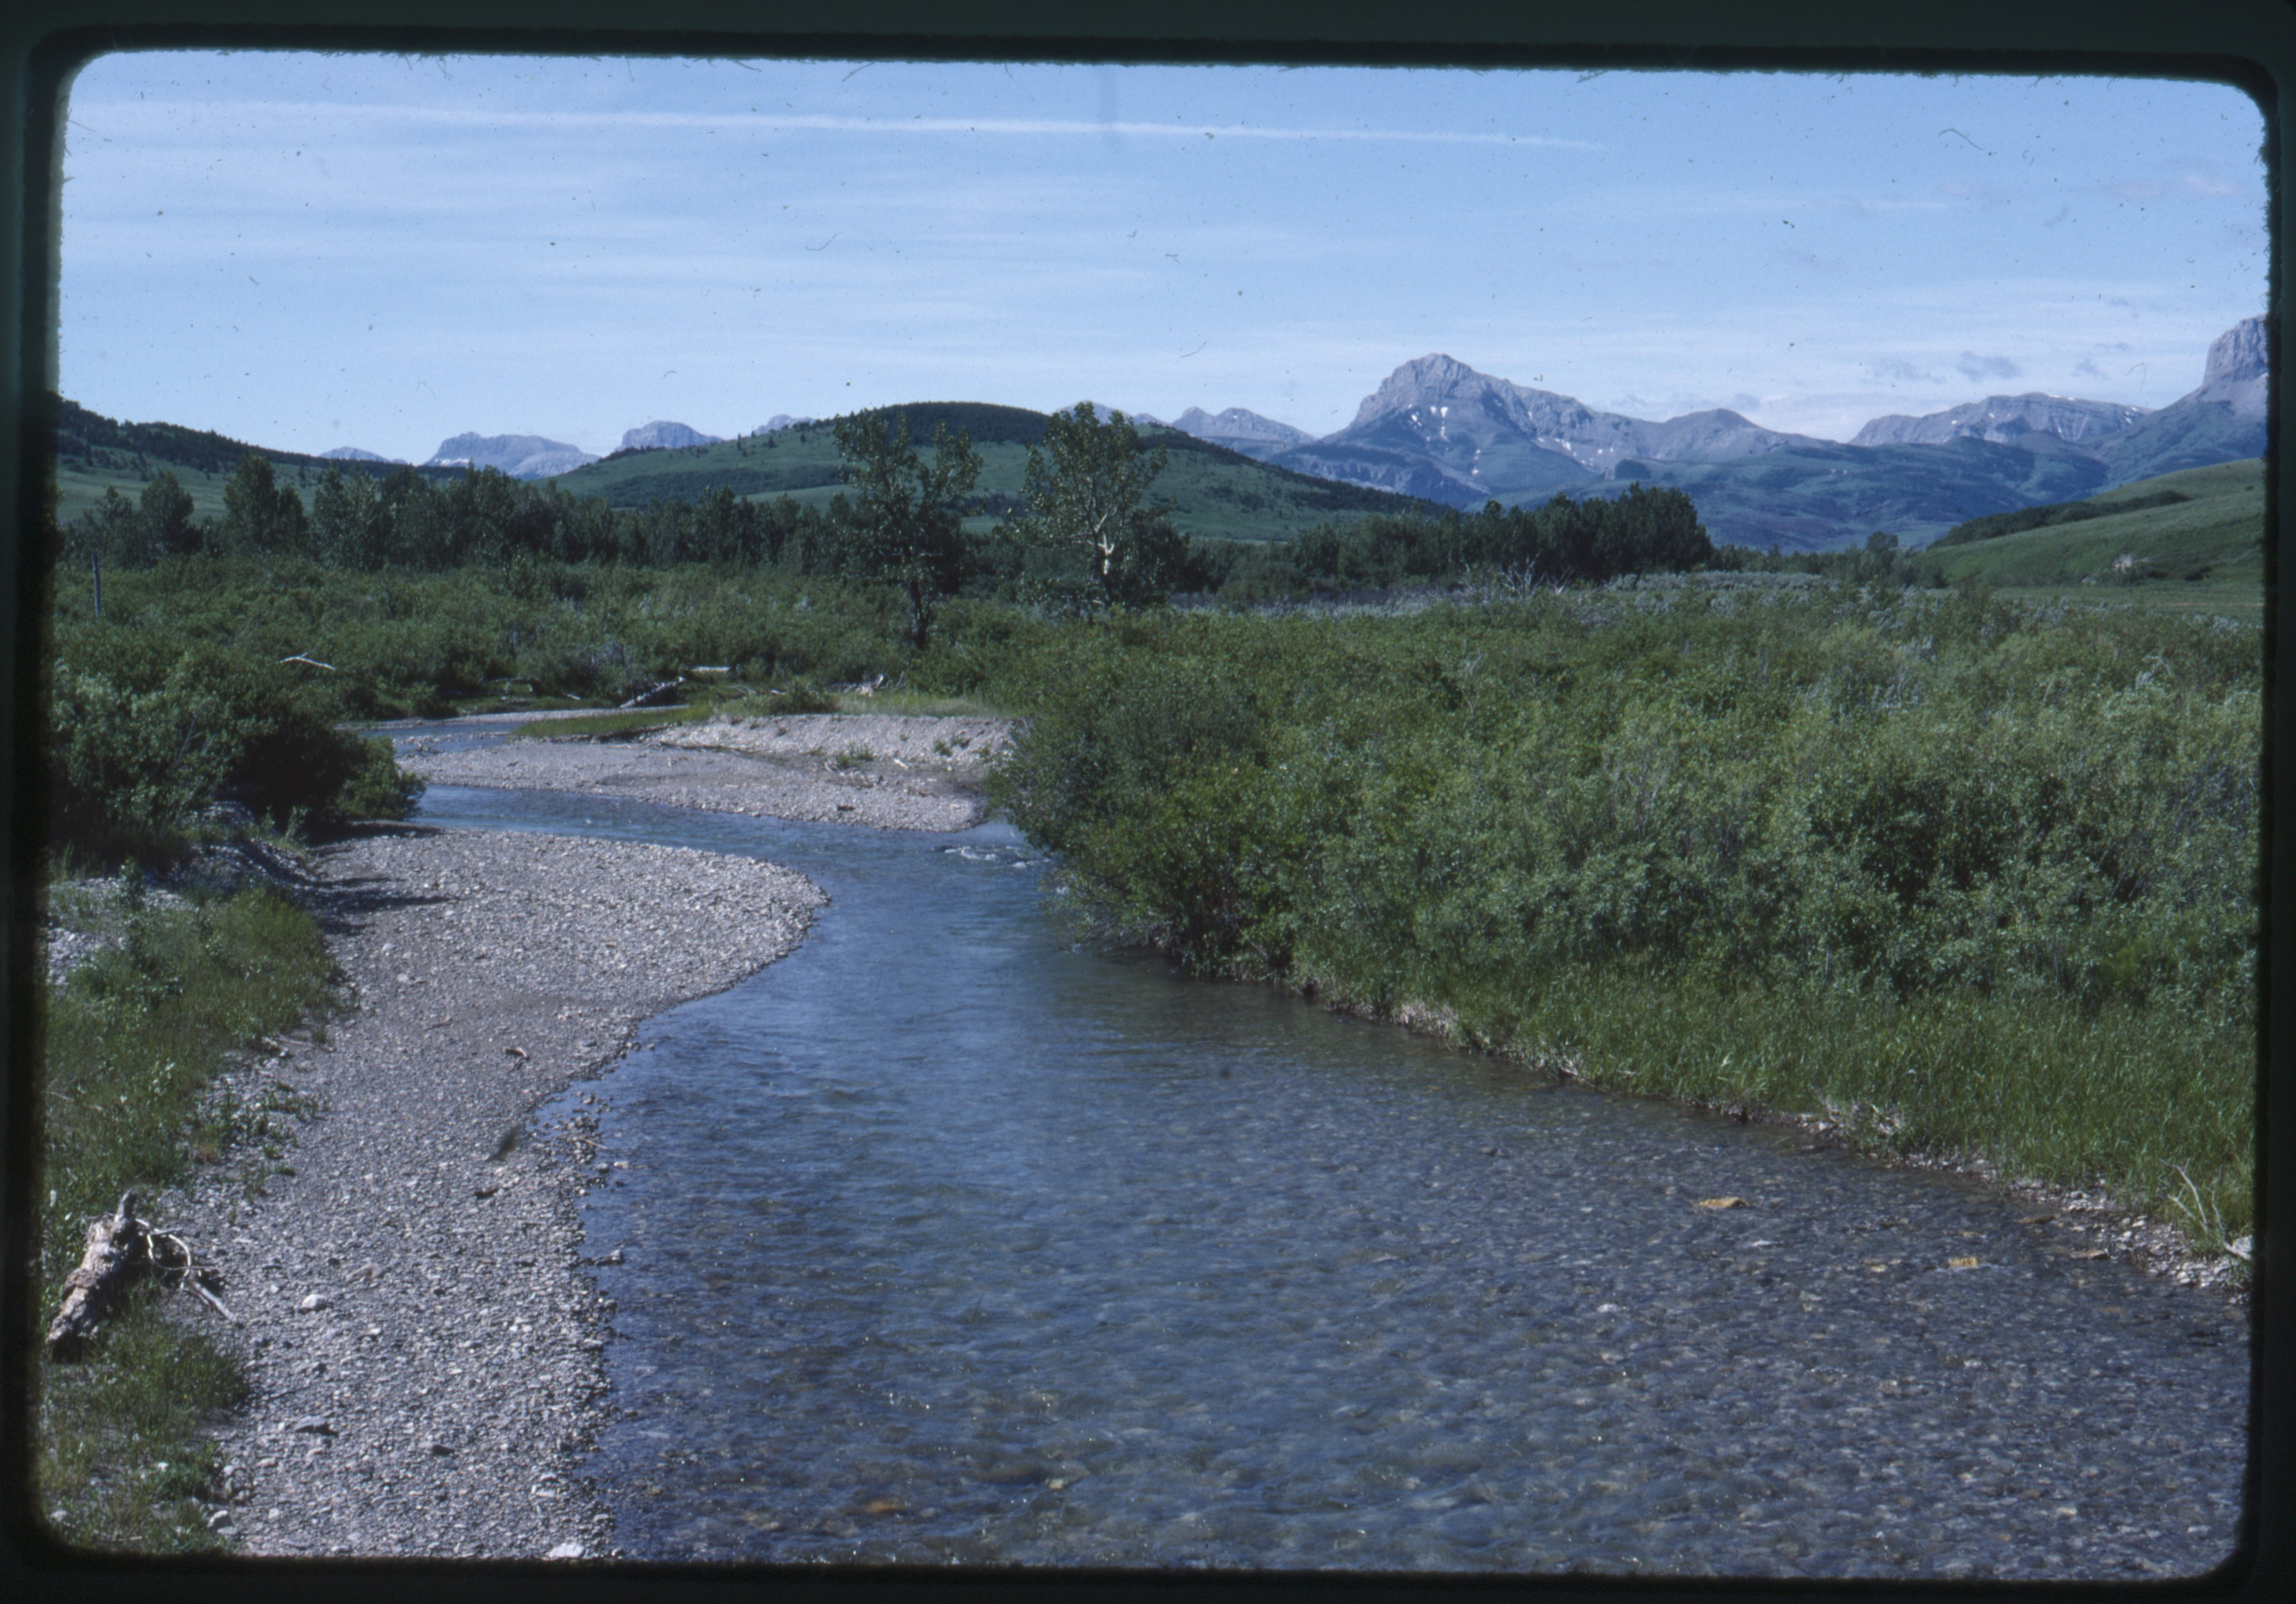 Dupuyer Creek at Den B bridge in Dupuyer, Montana